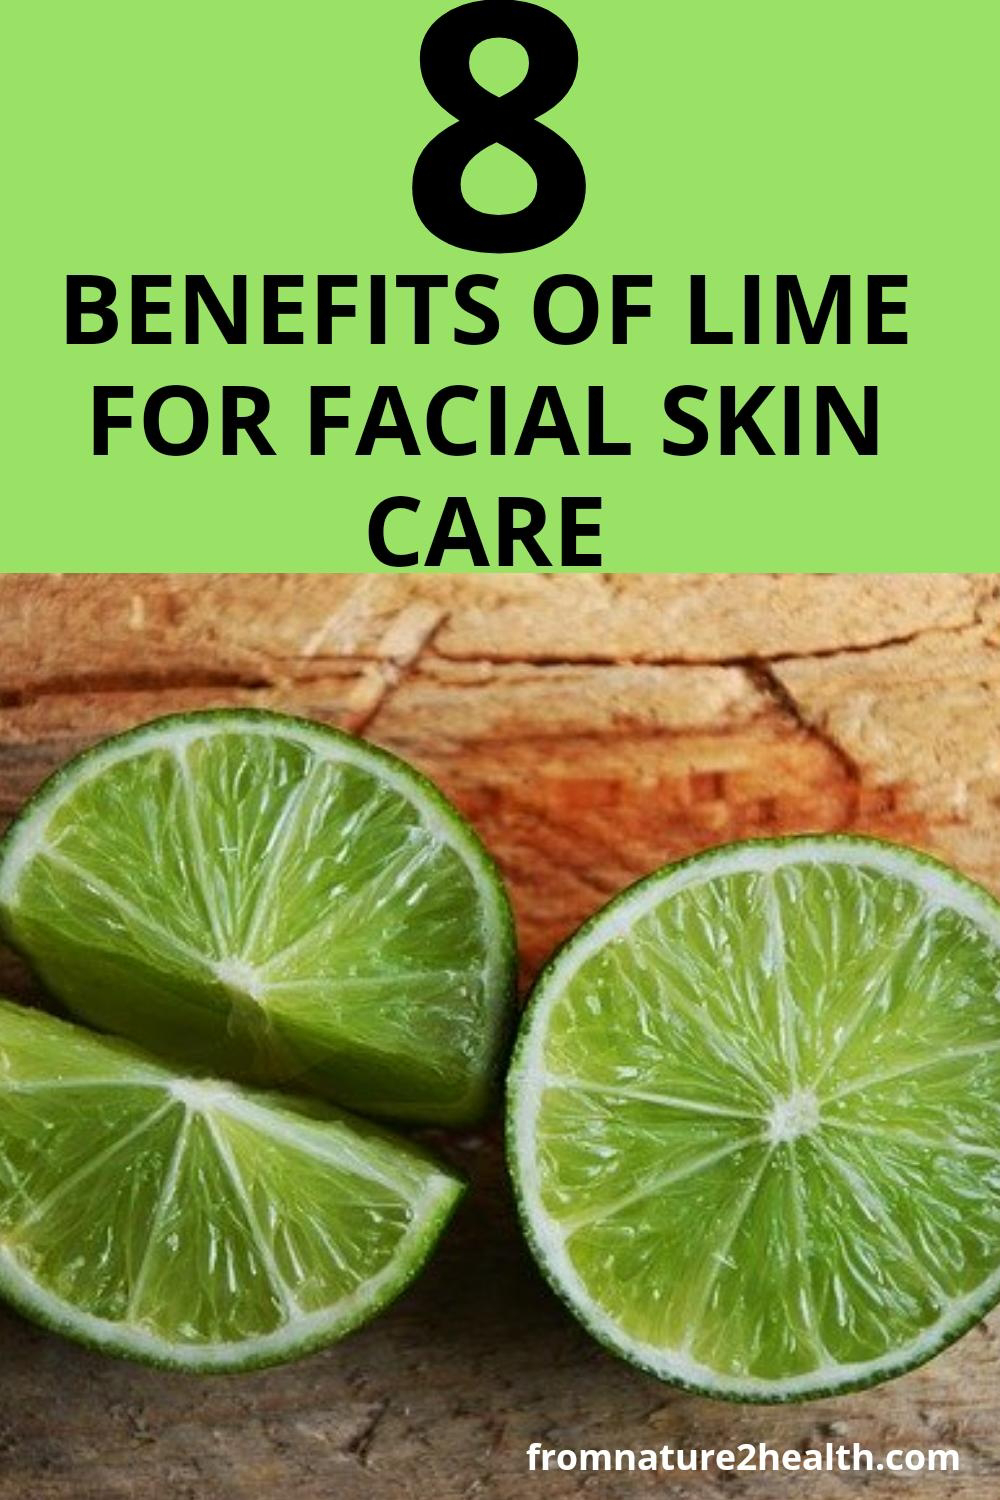 Benefits of Lime for Acne, Acne Scars, Anti Aging, Beauty,